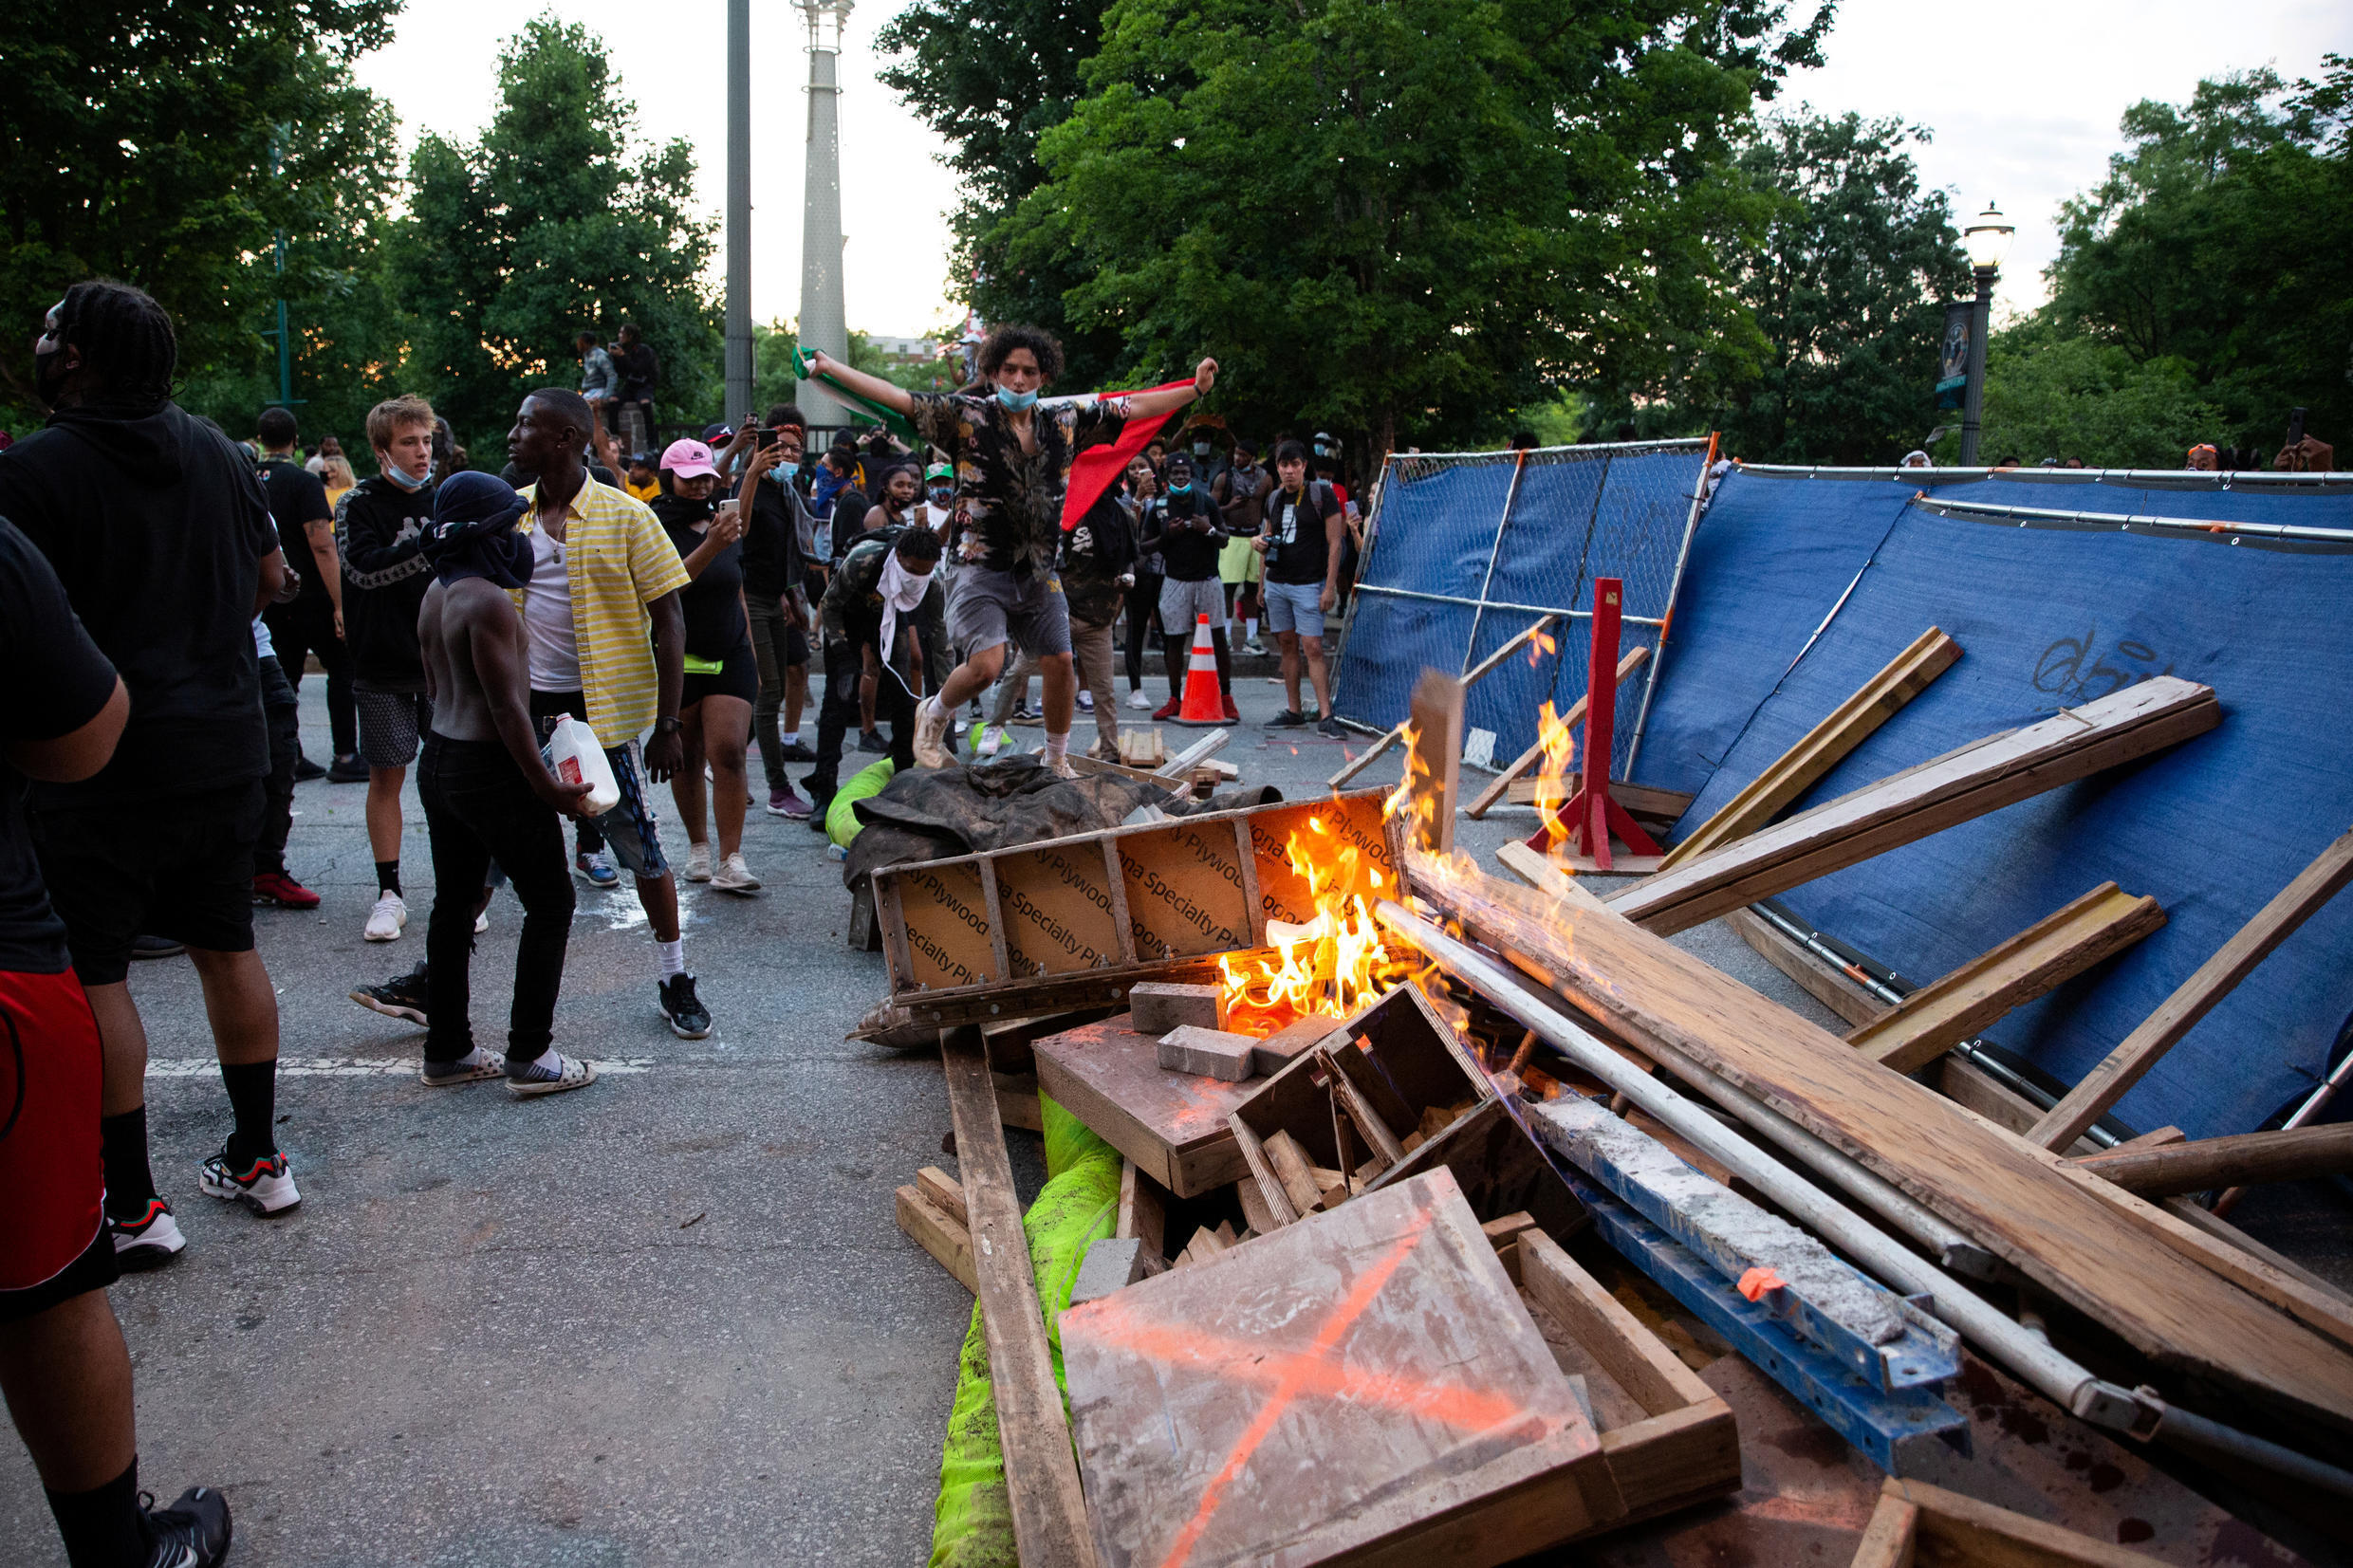 An improvised barricade on fire during a protest against the death in Minneapolis of African American George Floyd, on May 31, 2020.